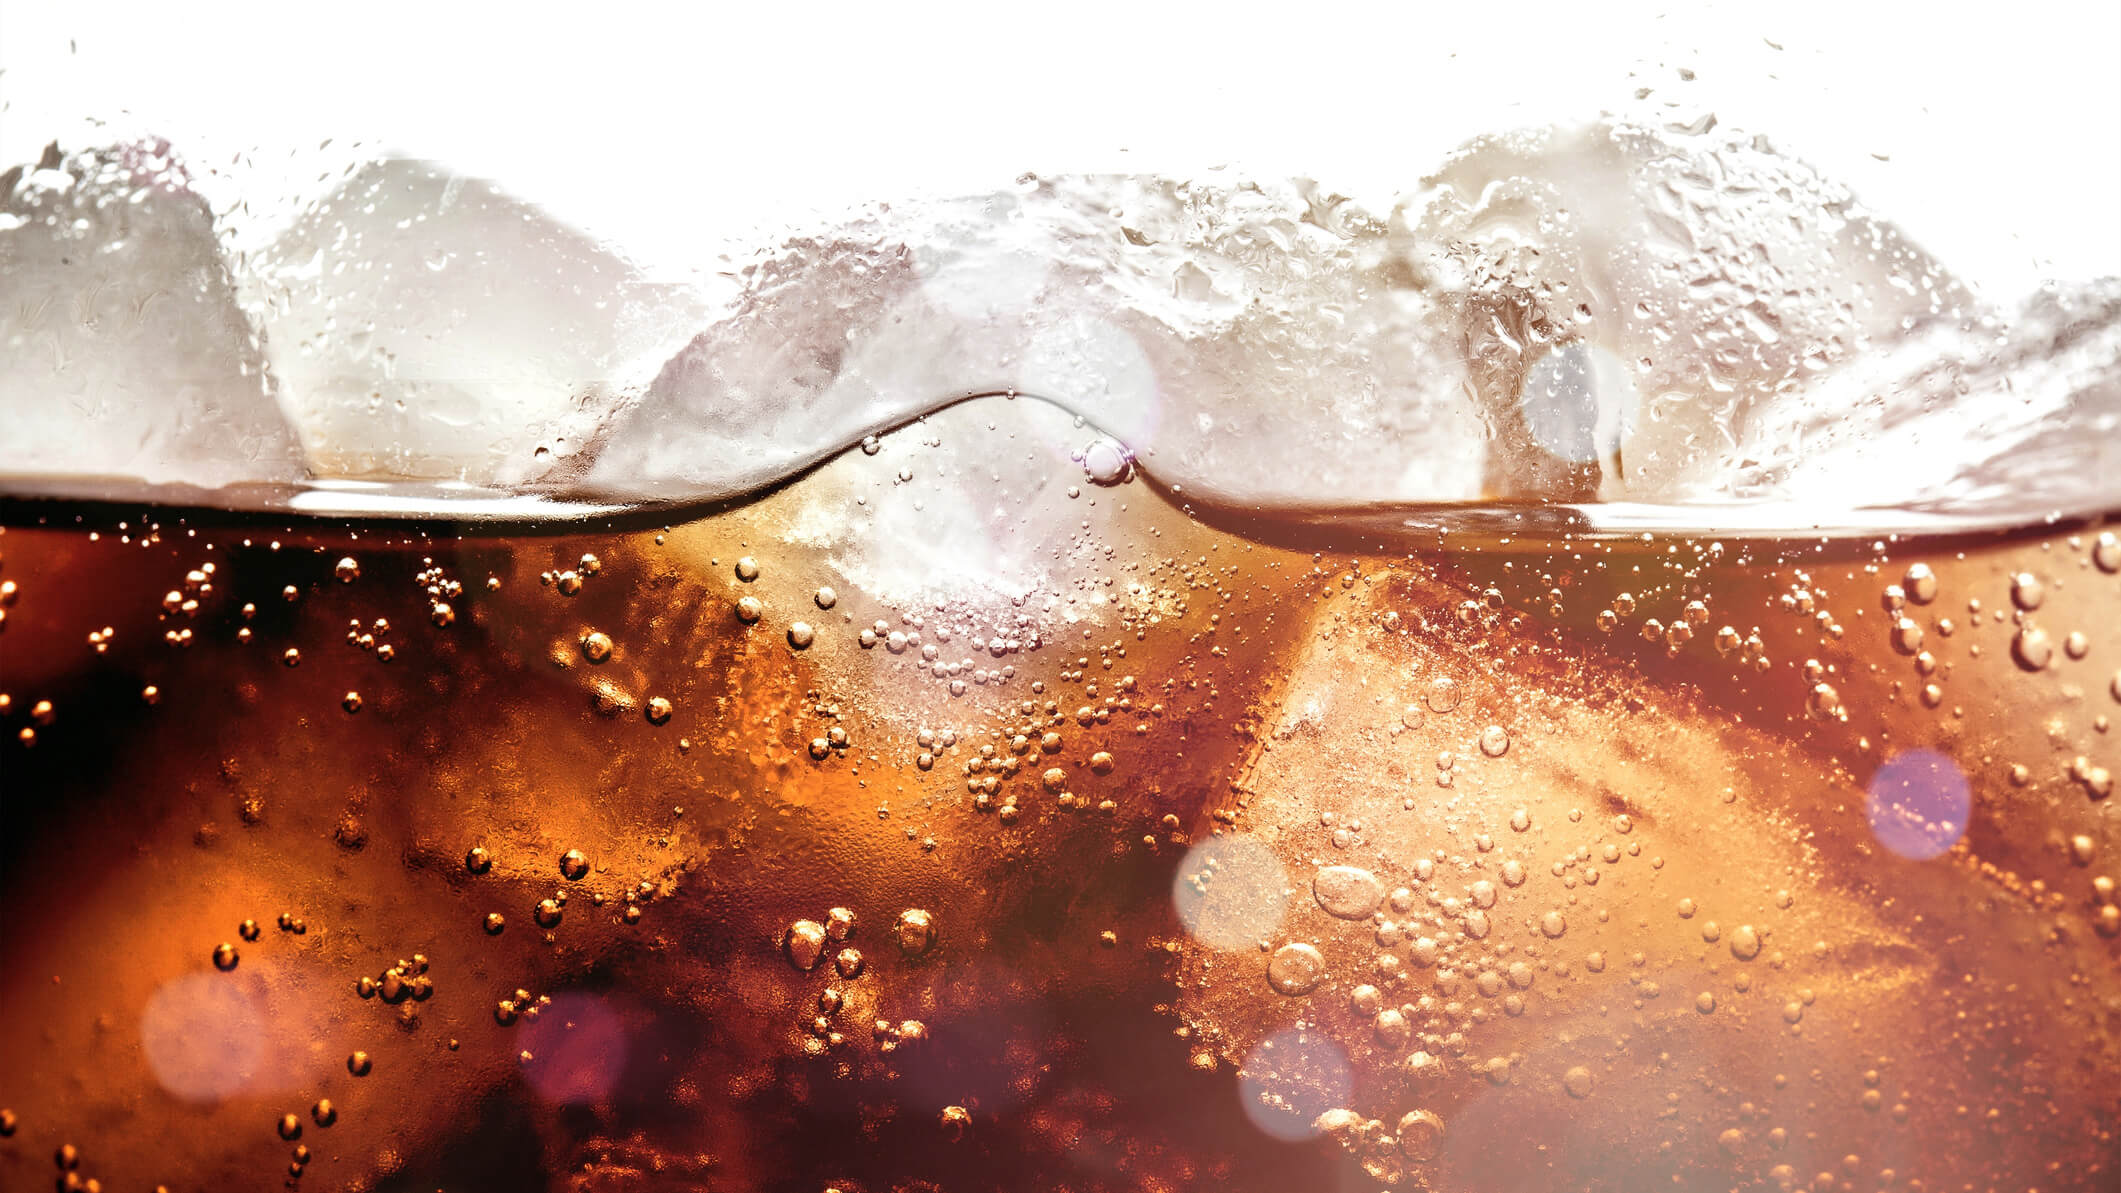 Ice cubes in cola beverage, close up